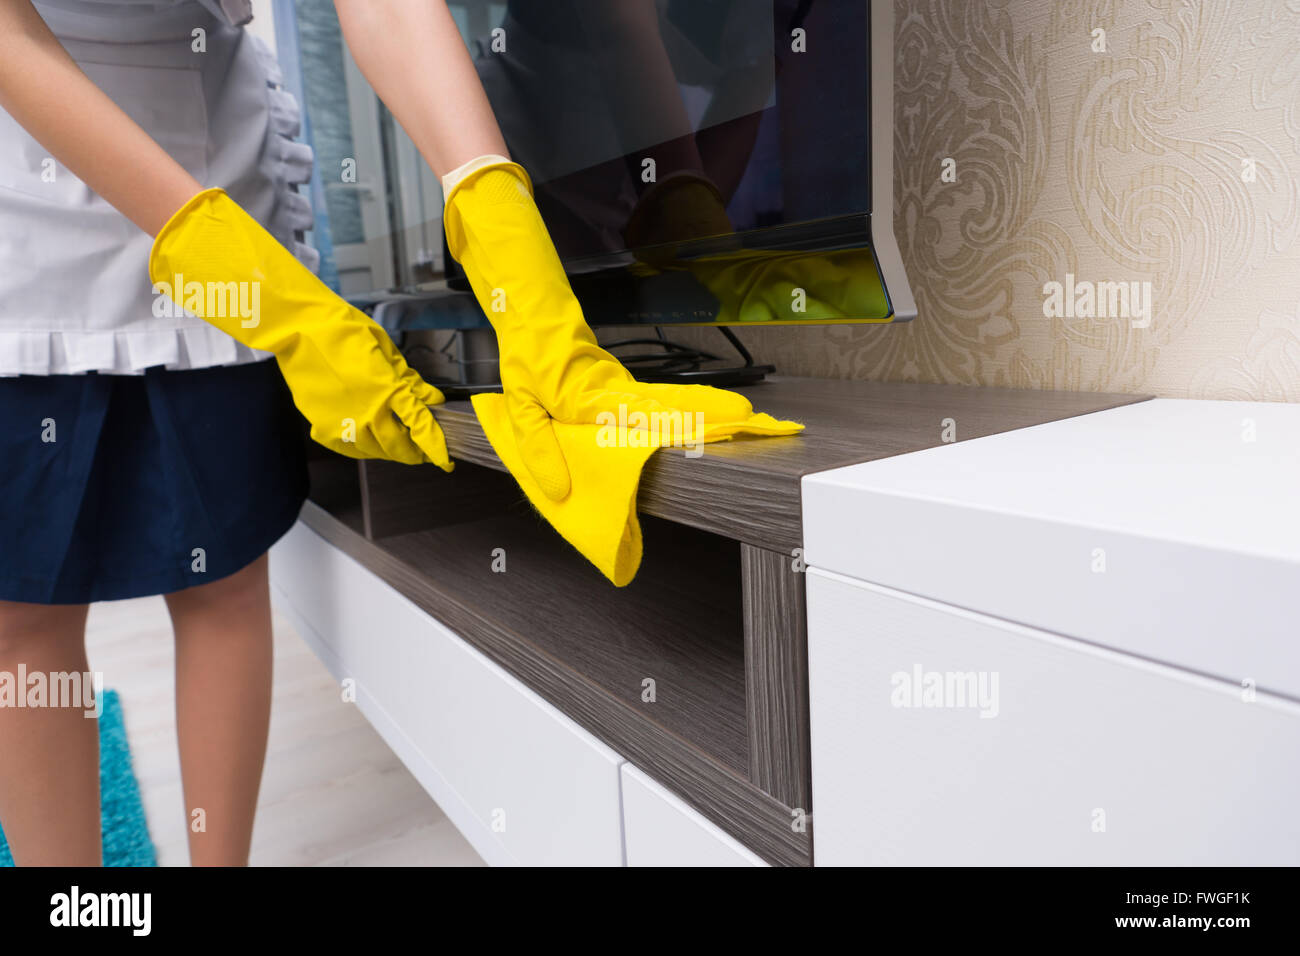 Housekeeper cleaning and dusting a television cabinet with a colorful yellow cloth, close up of her hands in yellow - Stock Image